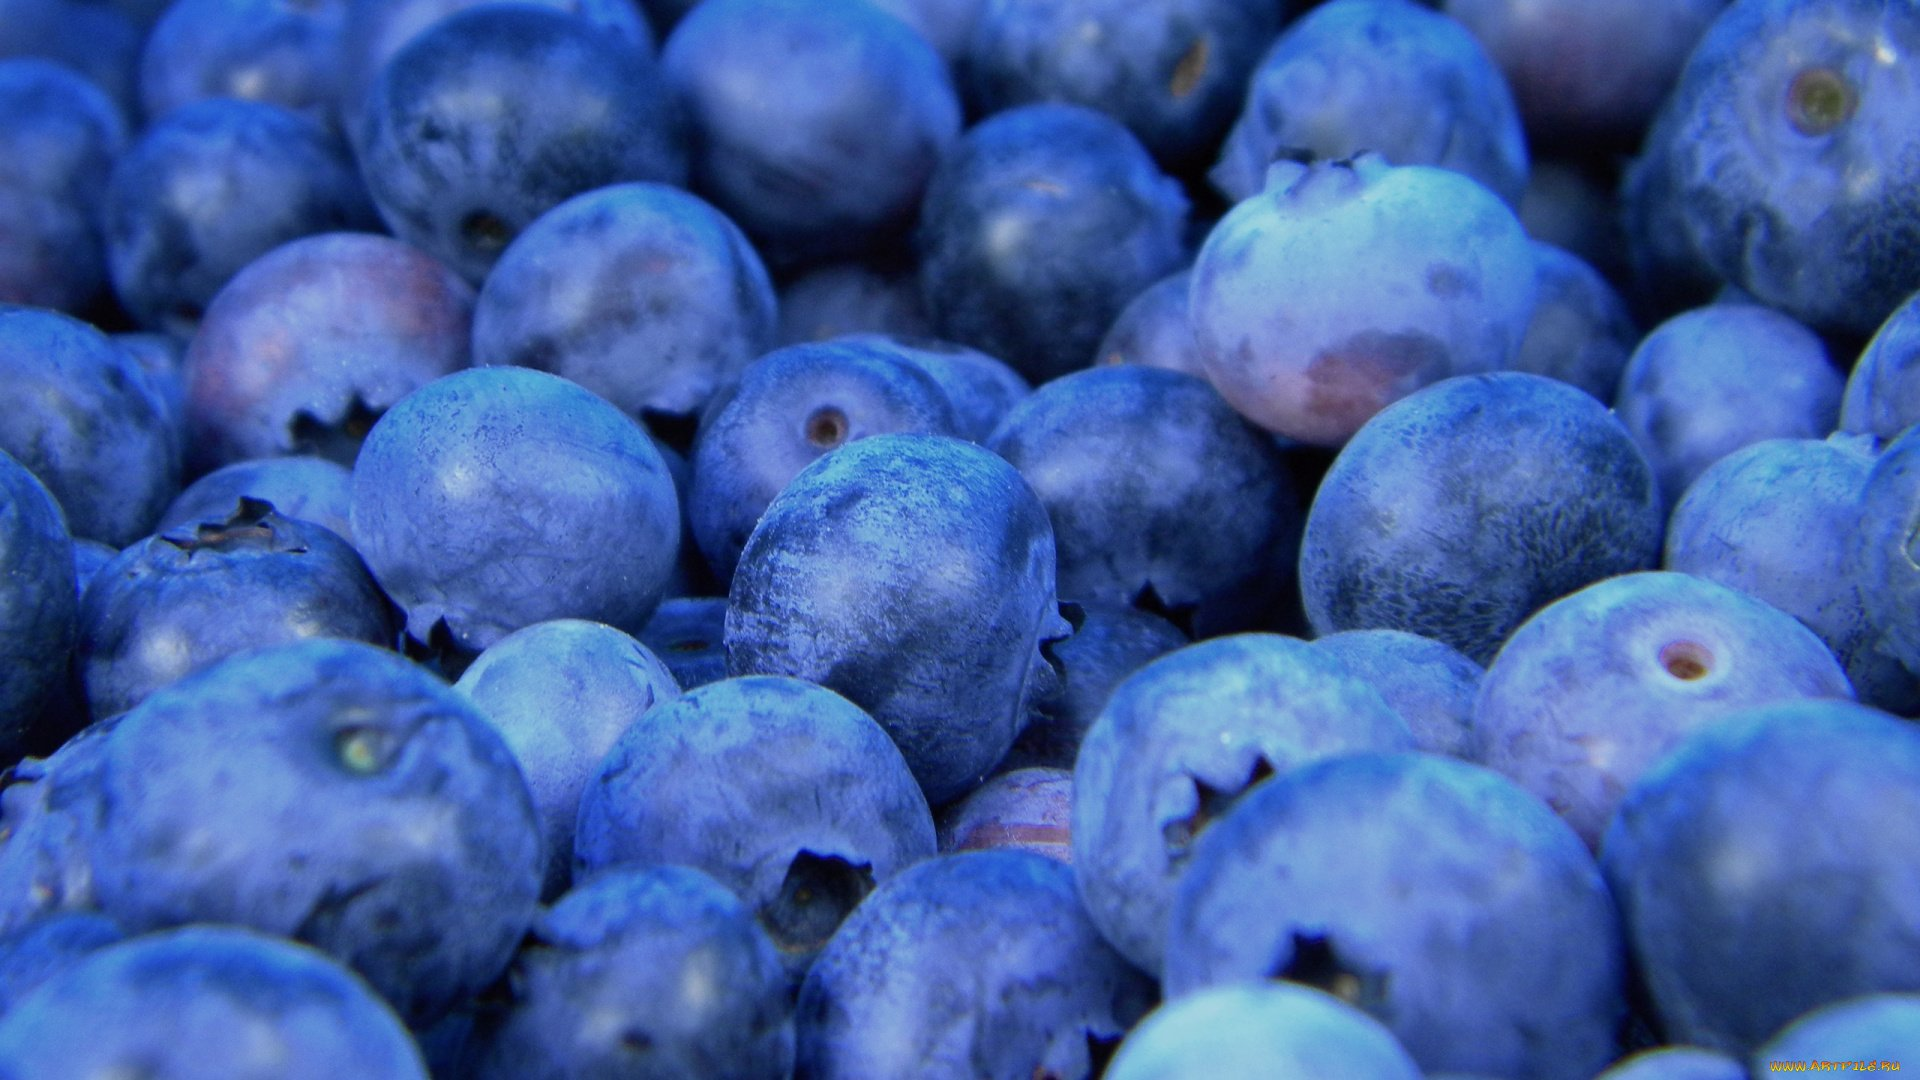 Blueberry Wallpaper and Background